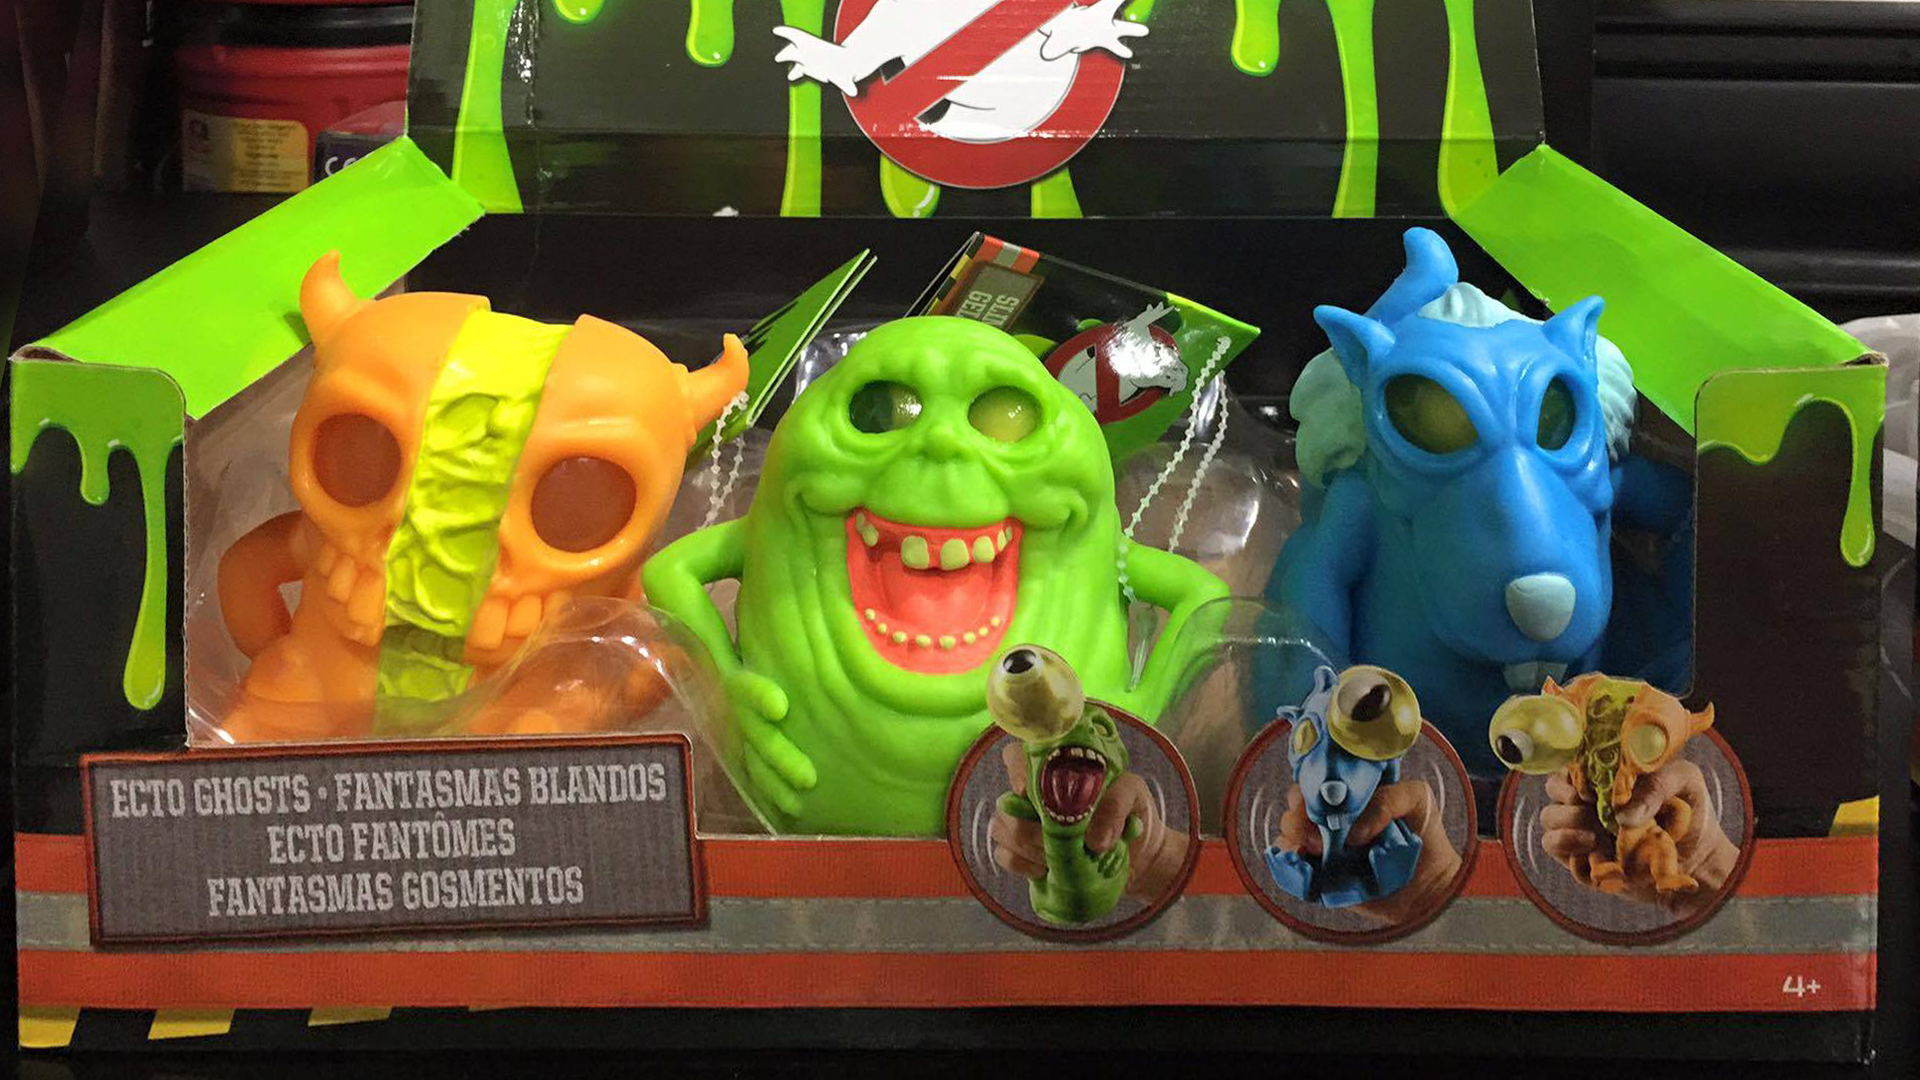 Mattel Ghostbusters Ecto Ghosts Set Ghostbusters Wiki